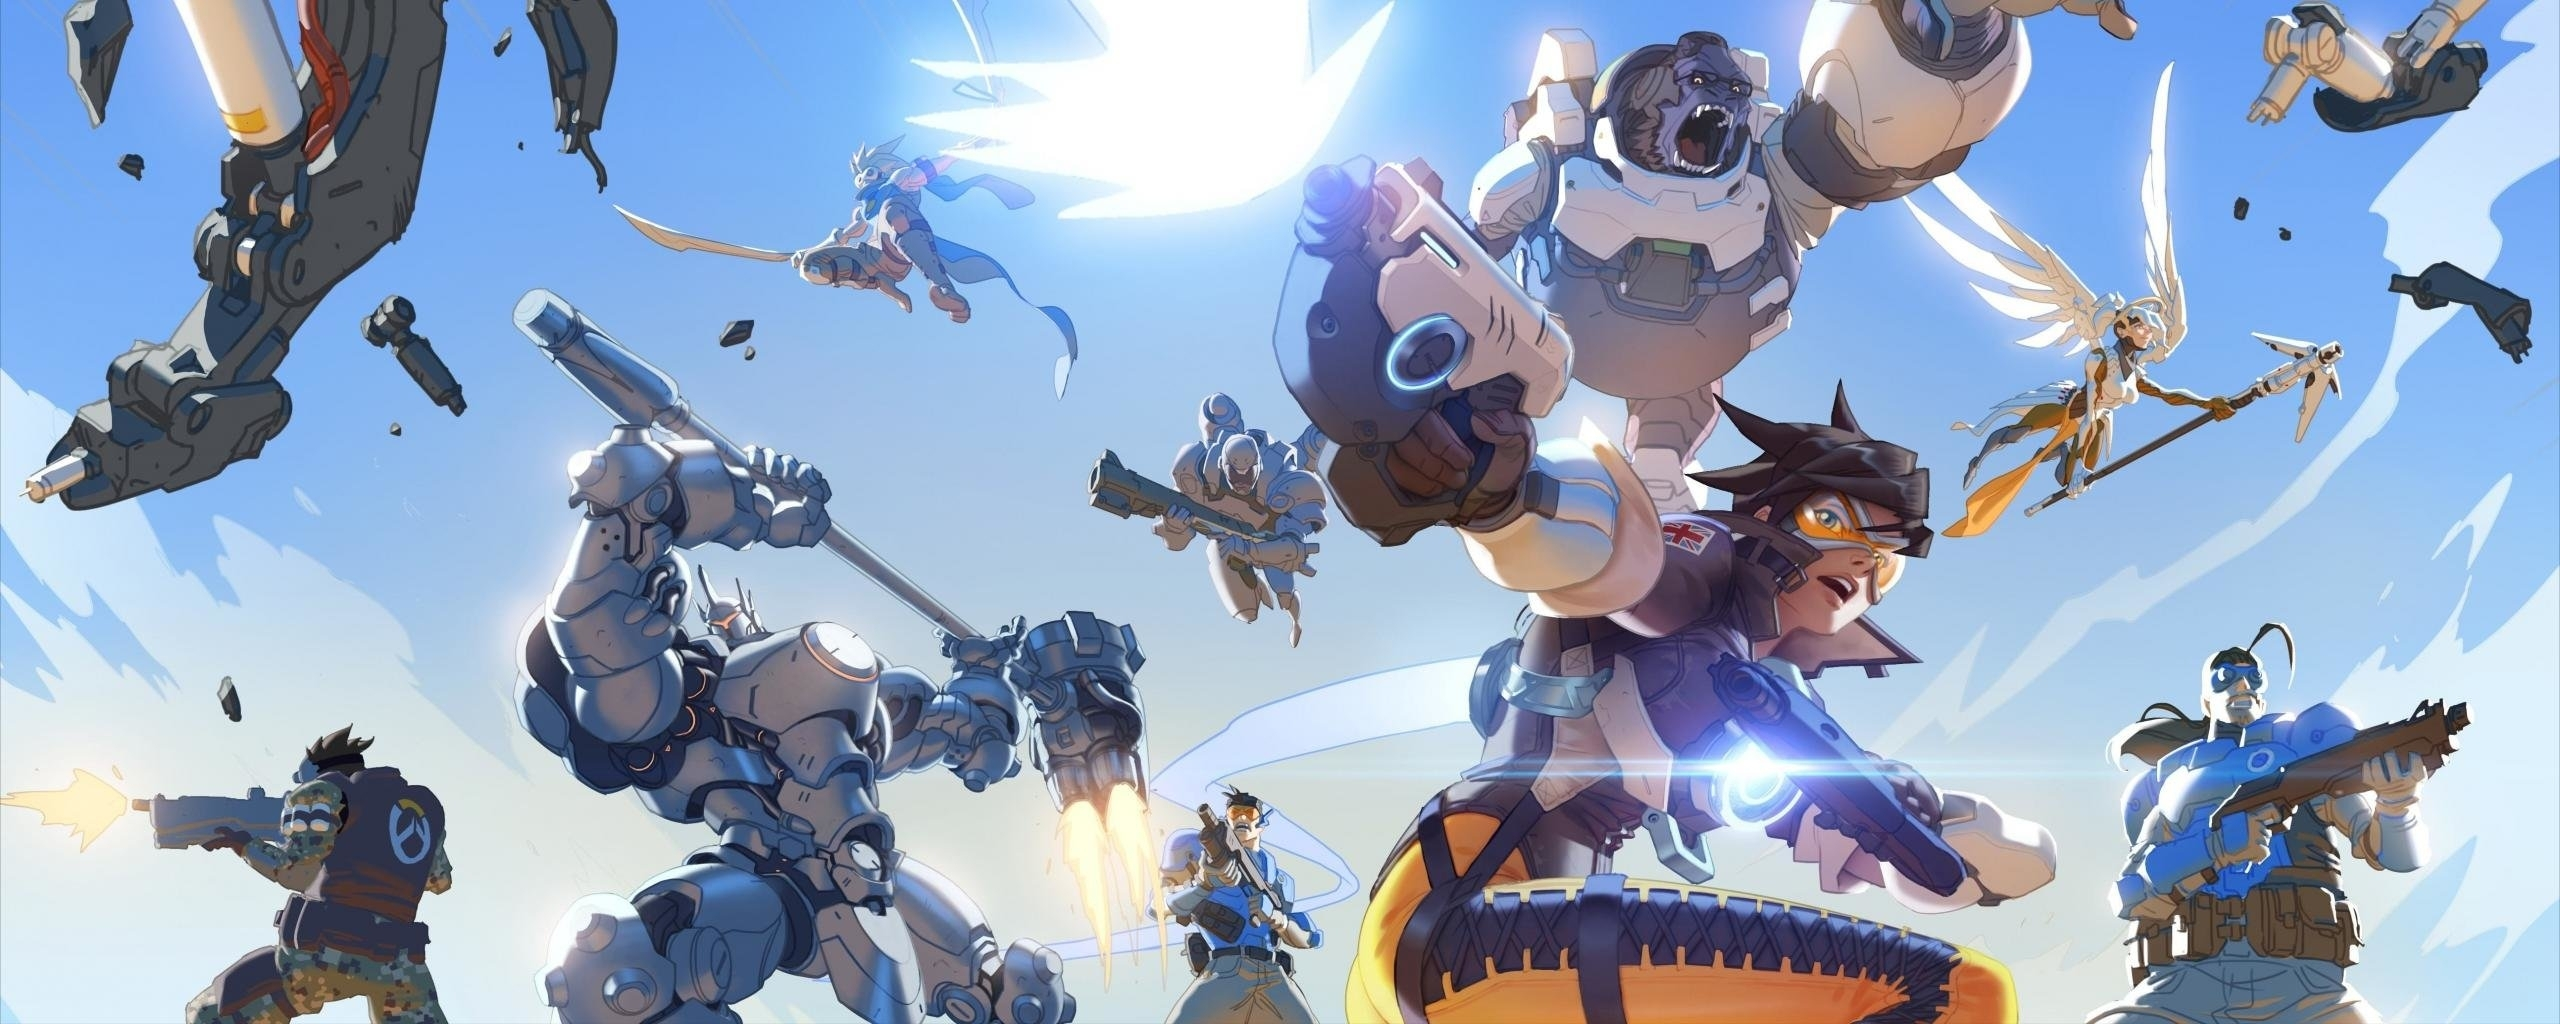 dual monitor winston (overwatch) wallpapers, hd backgrounds